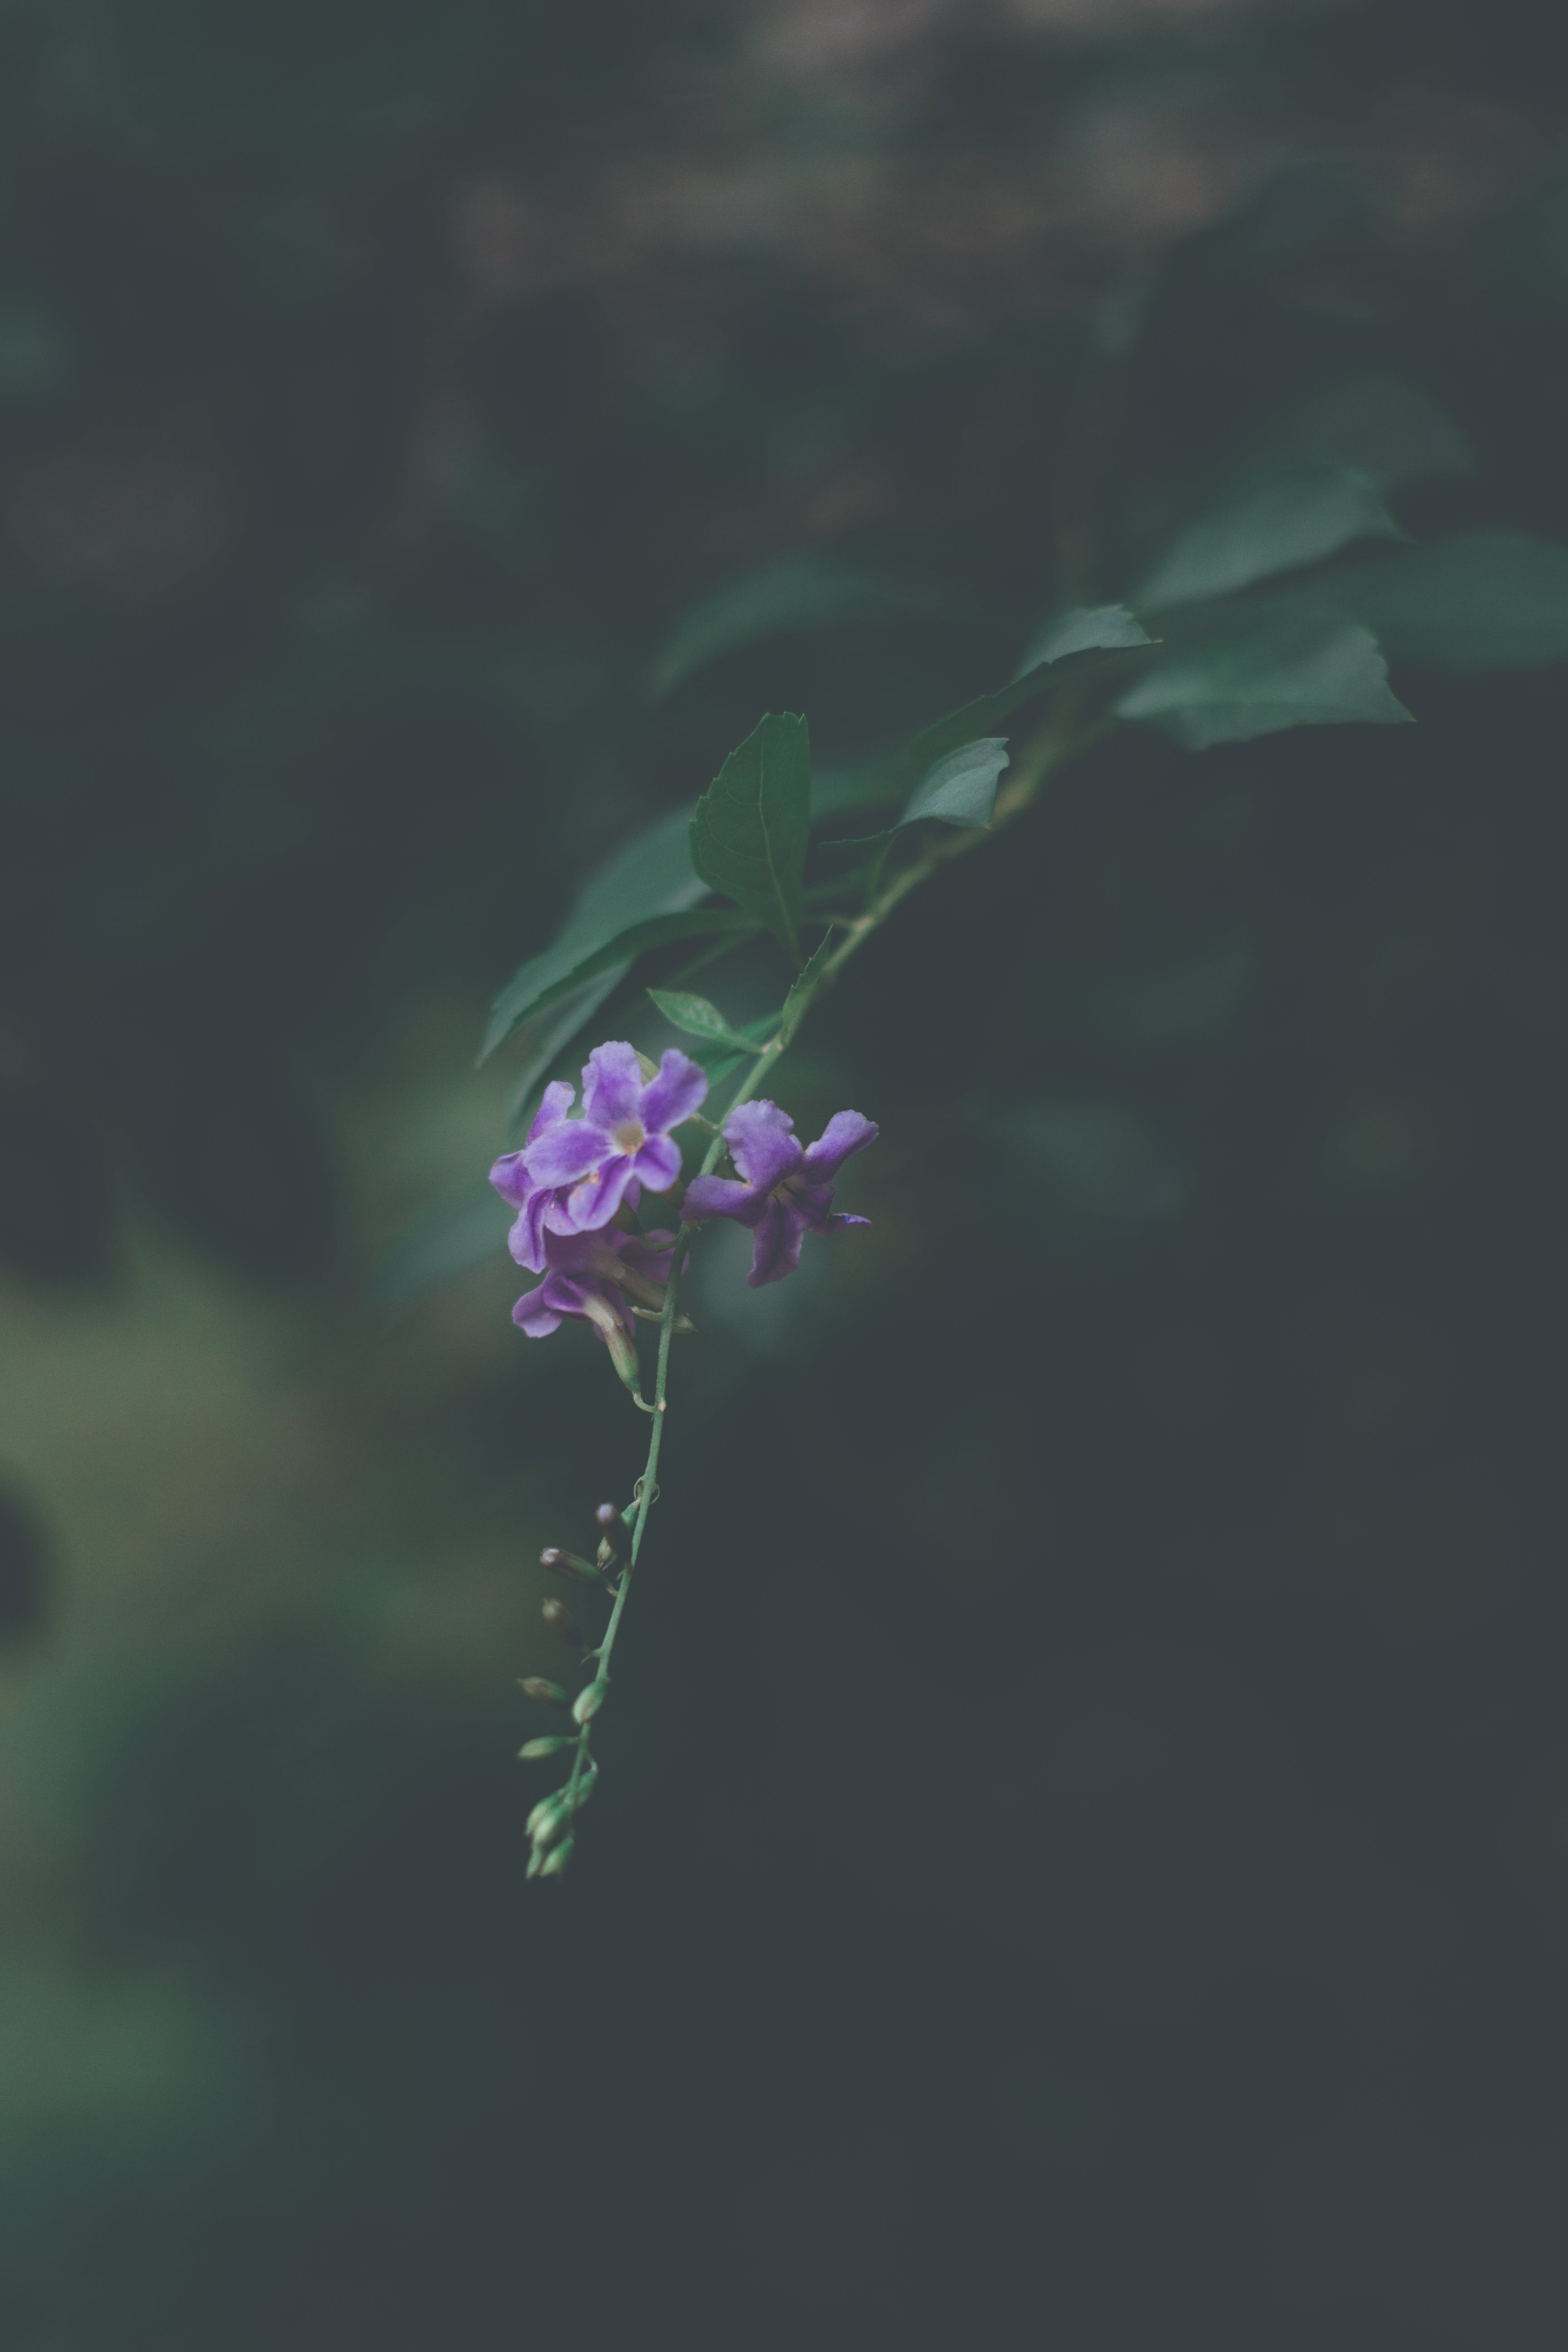 Shallow Focus Photo of Green Plant With Purple Flowers